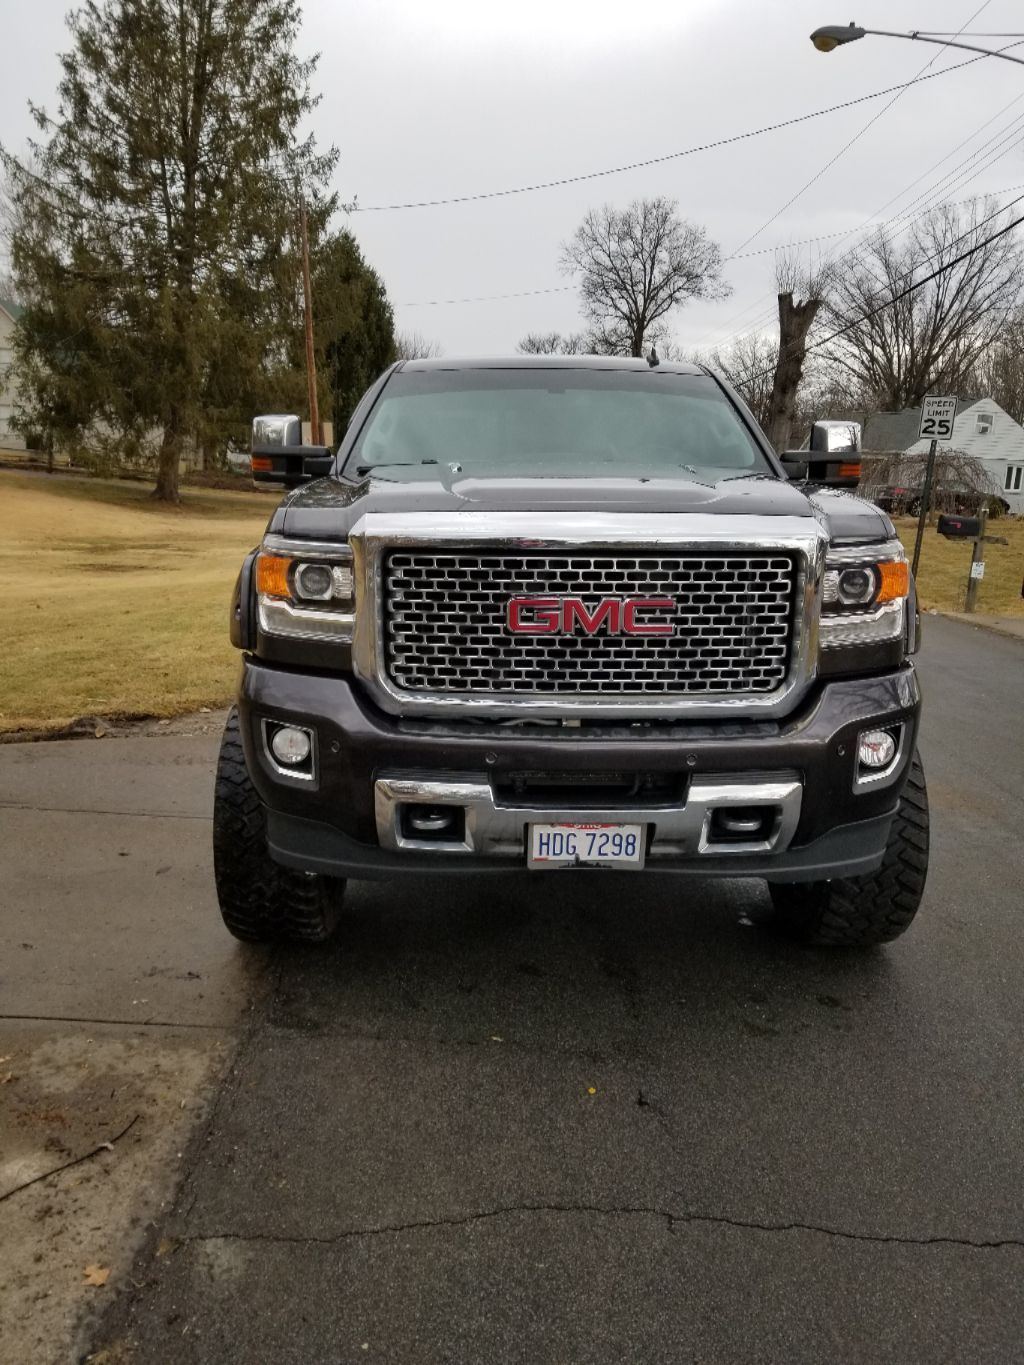 Lifted Trucks For Sale In Ohio >> fully loaded 2015 GMC Sierra 2500 Denali lifted for sale